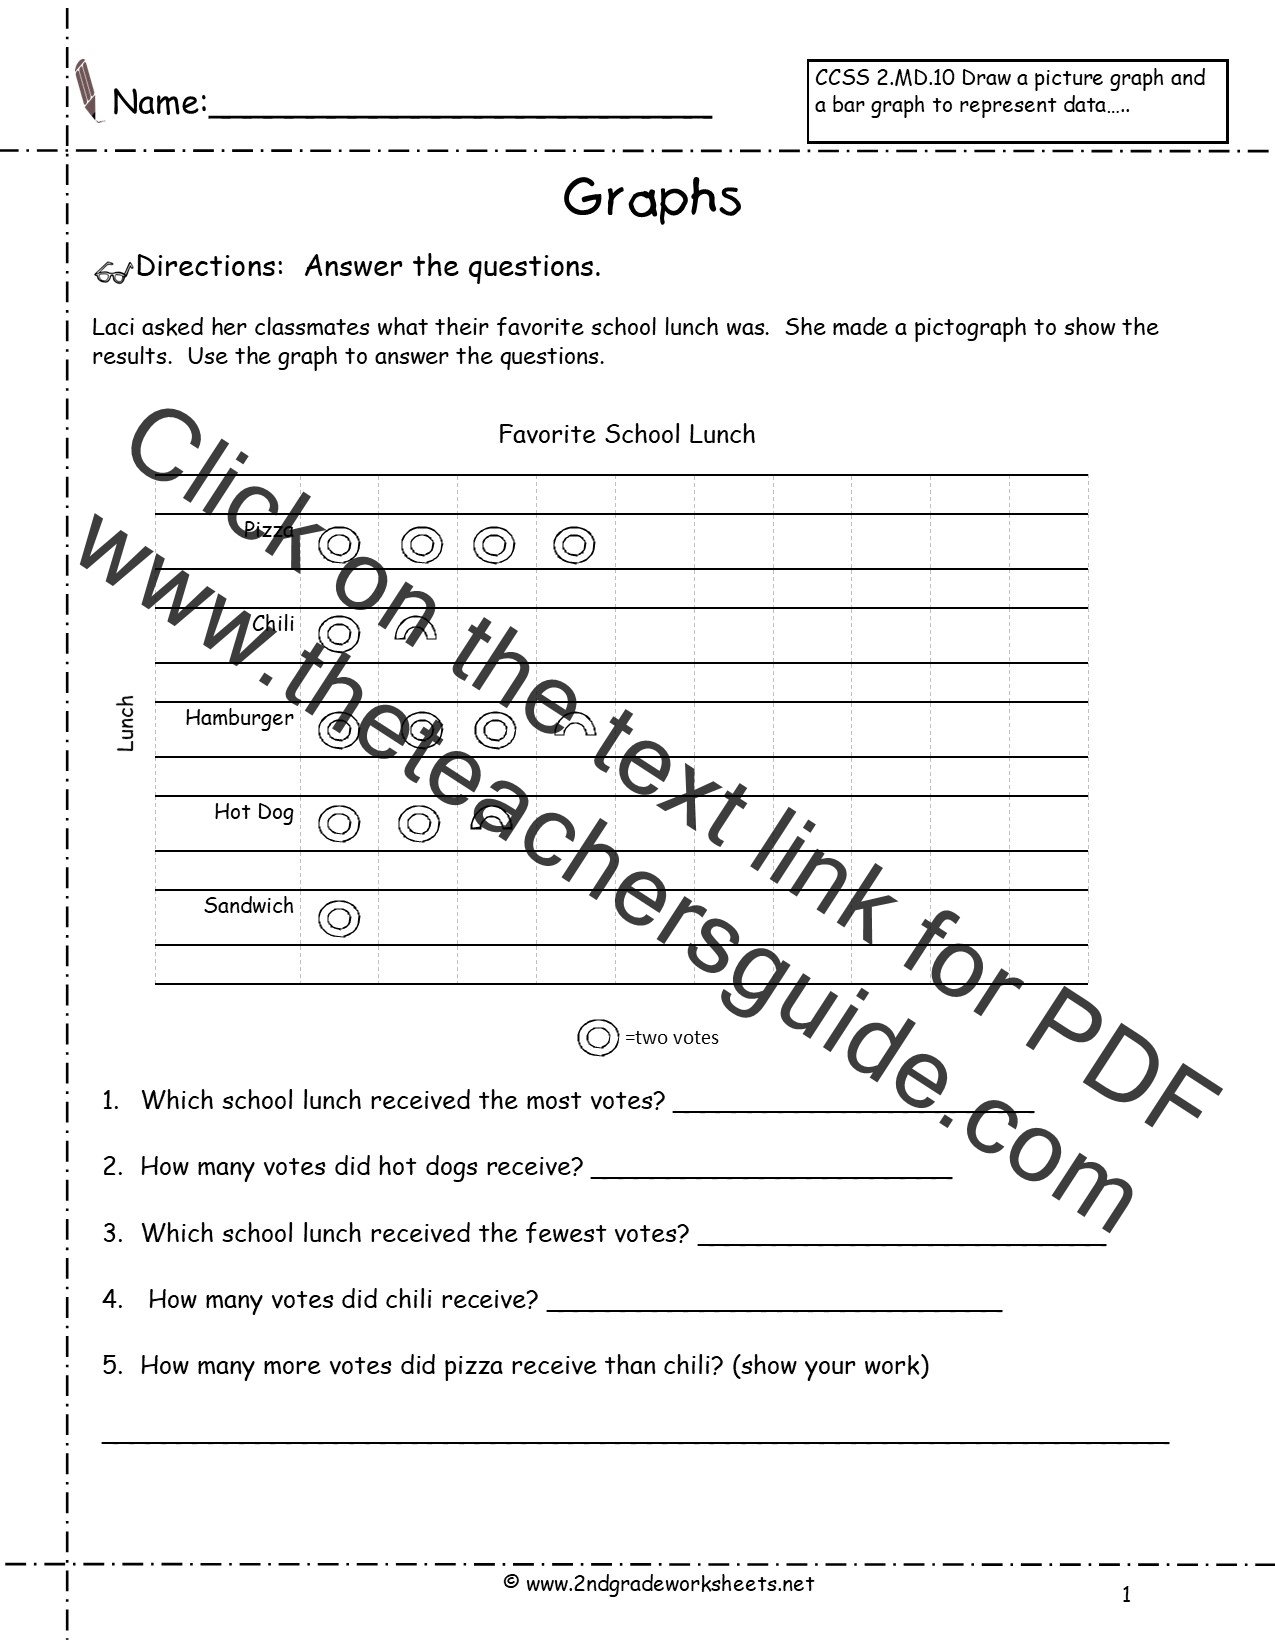 worksheet Pictograph Worksheet reading and creating pictographs worksheets from the teachers guide favorite school lunch pictograph